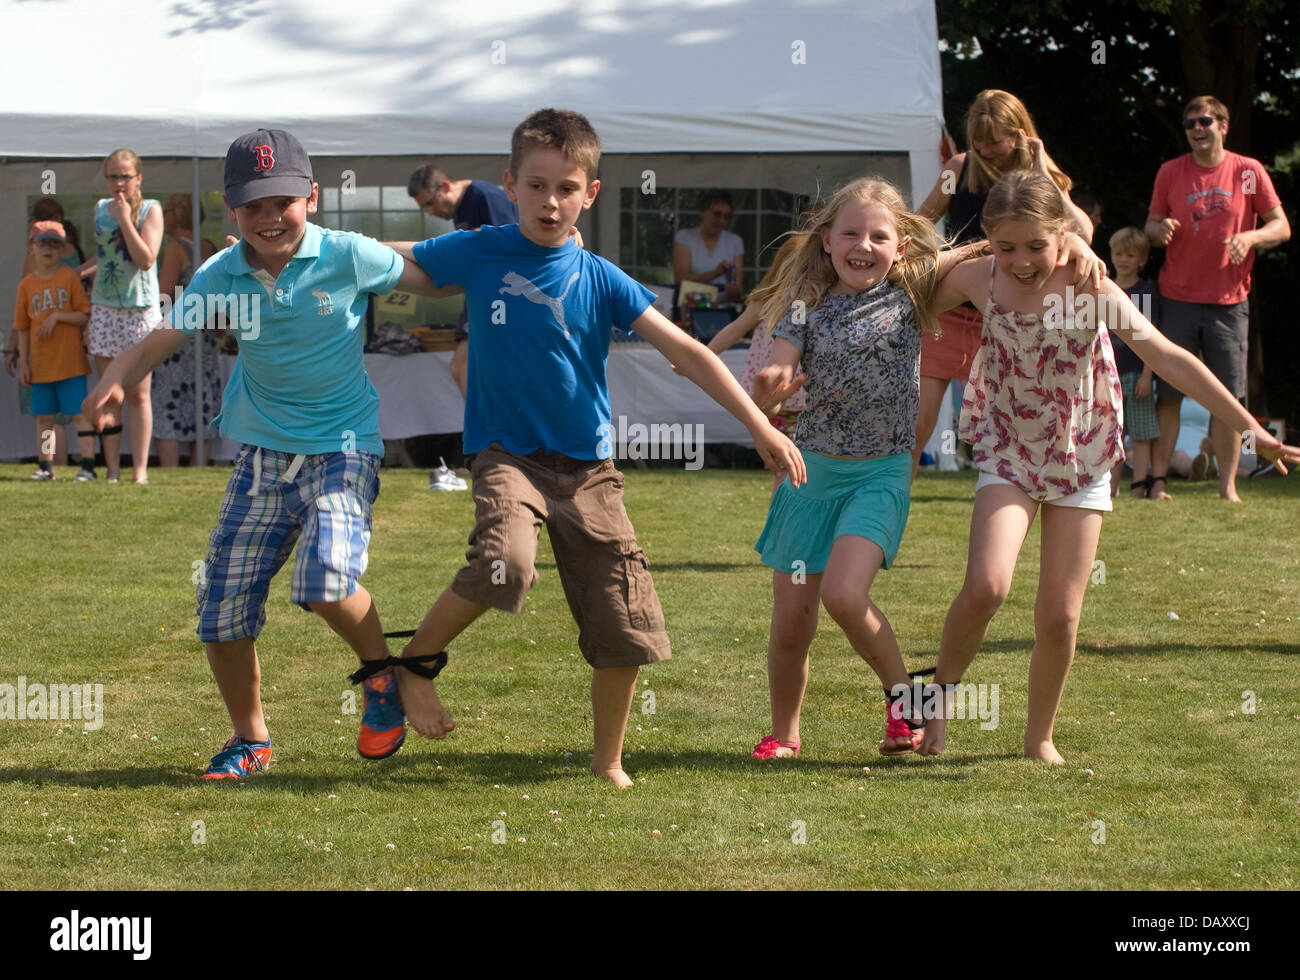 Youngsters taking part in a two-legged race at Worldham Village Fete, Hampshire, UK. Sunday 14 July 2013. - Stock Image